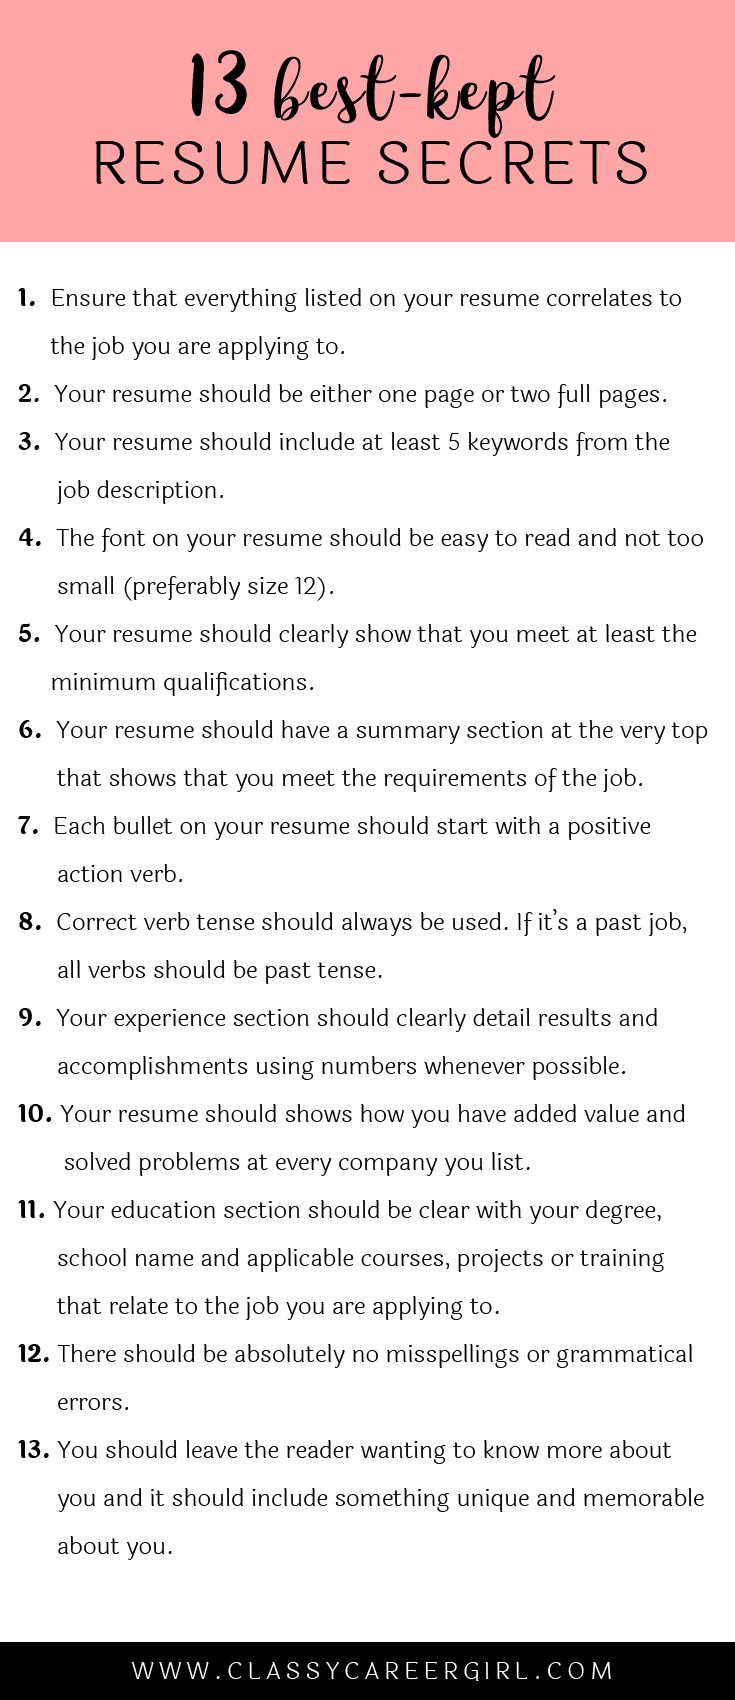 Opposenewapstandardsus  Splendid  Ideas About Resume On Pinterest  Cv Format Resume  With Hot Some Hiring Managers Will Toss Your Resume Out If You Dont Know These  With Easy On The Eye Video Resumes Also Federal Government Resume In Addition Admin Resume And How To Present A Resume As Well As Tech Support Resume Additionally What Font Should A Resume Be In From Pinterestcom With Opposenewapstandardsus  Hot  Ideas About Resume On Pinterest  Cv Format Resume  With Easy On The Eye Some Hiring Managers Will Toss Your Resume Out If You Dont Know These  And Splendid Video Resumes Also Federal Government Resume In Addition Admin Resume From Pinterestcom